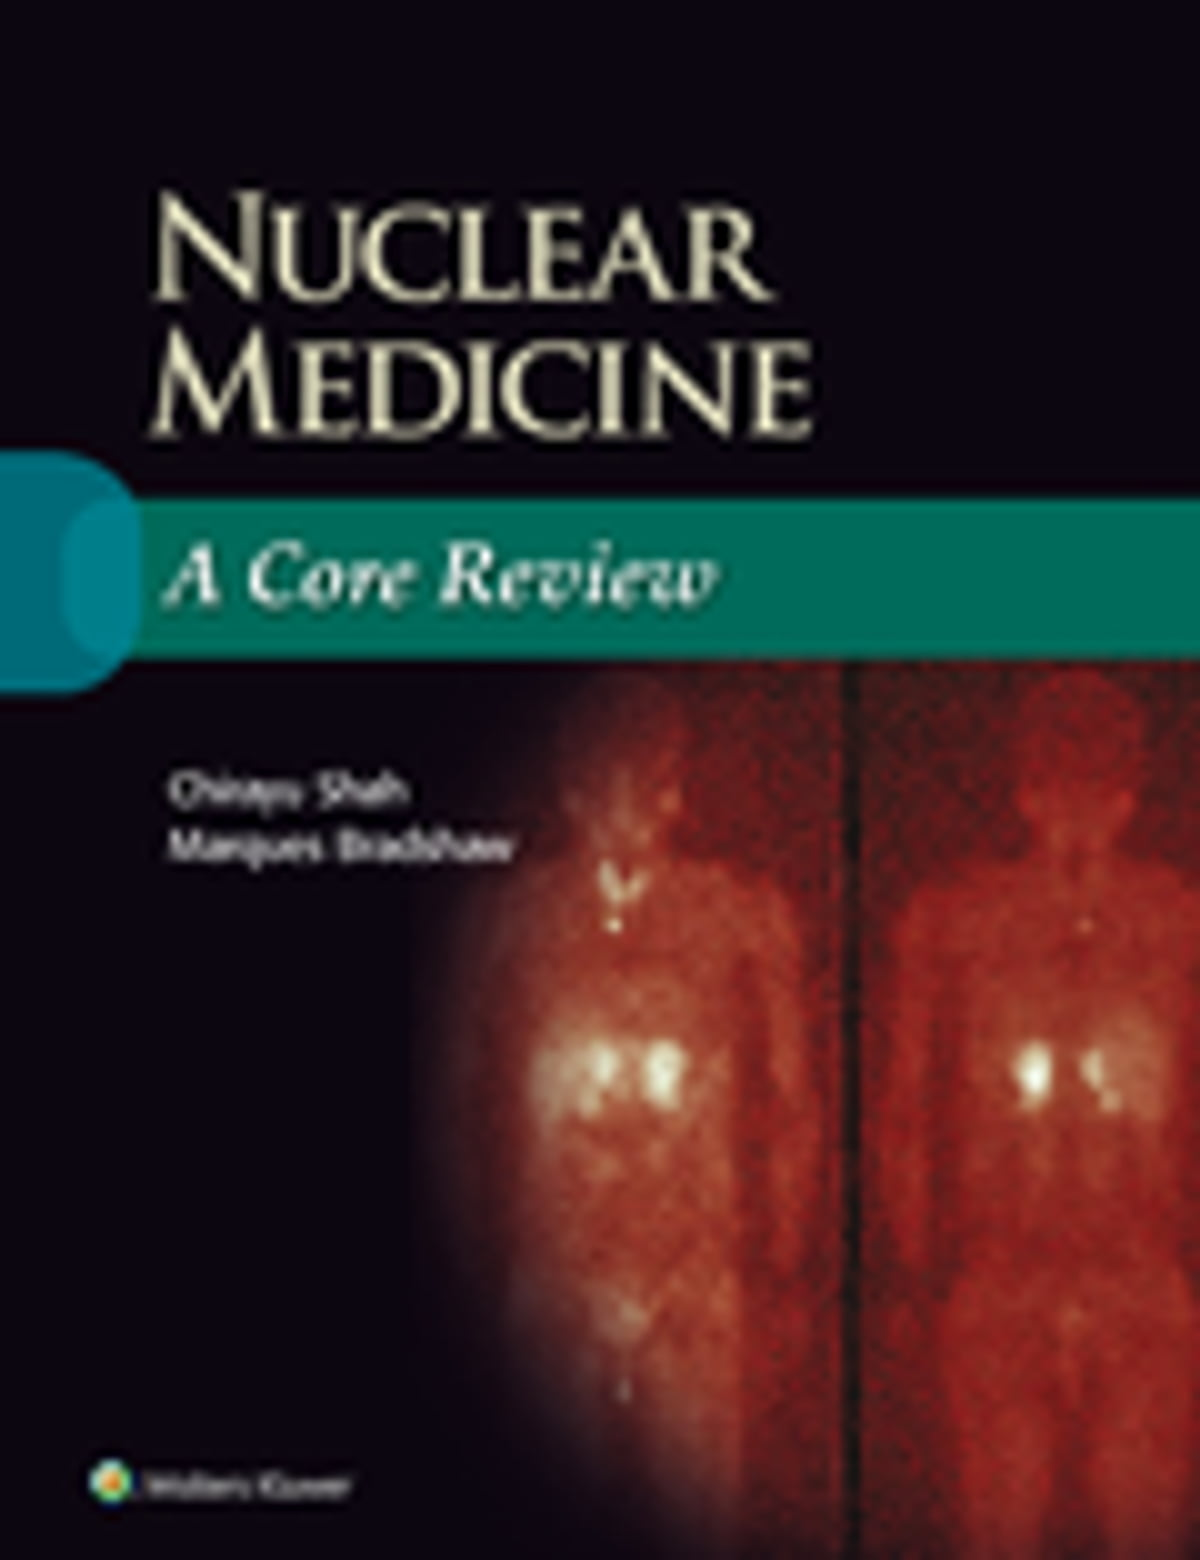 Nuclear medicine a core review ebook by chirayu shah nuclear medicine a core review ebook by chirayu shah 9781496338457 rakuten kobo fandeluxe Images